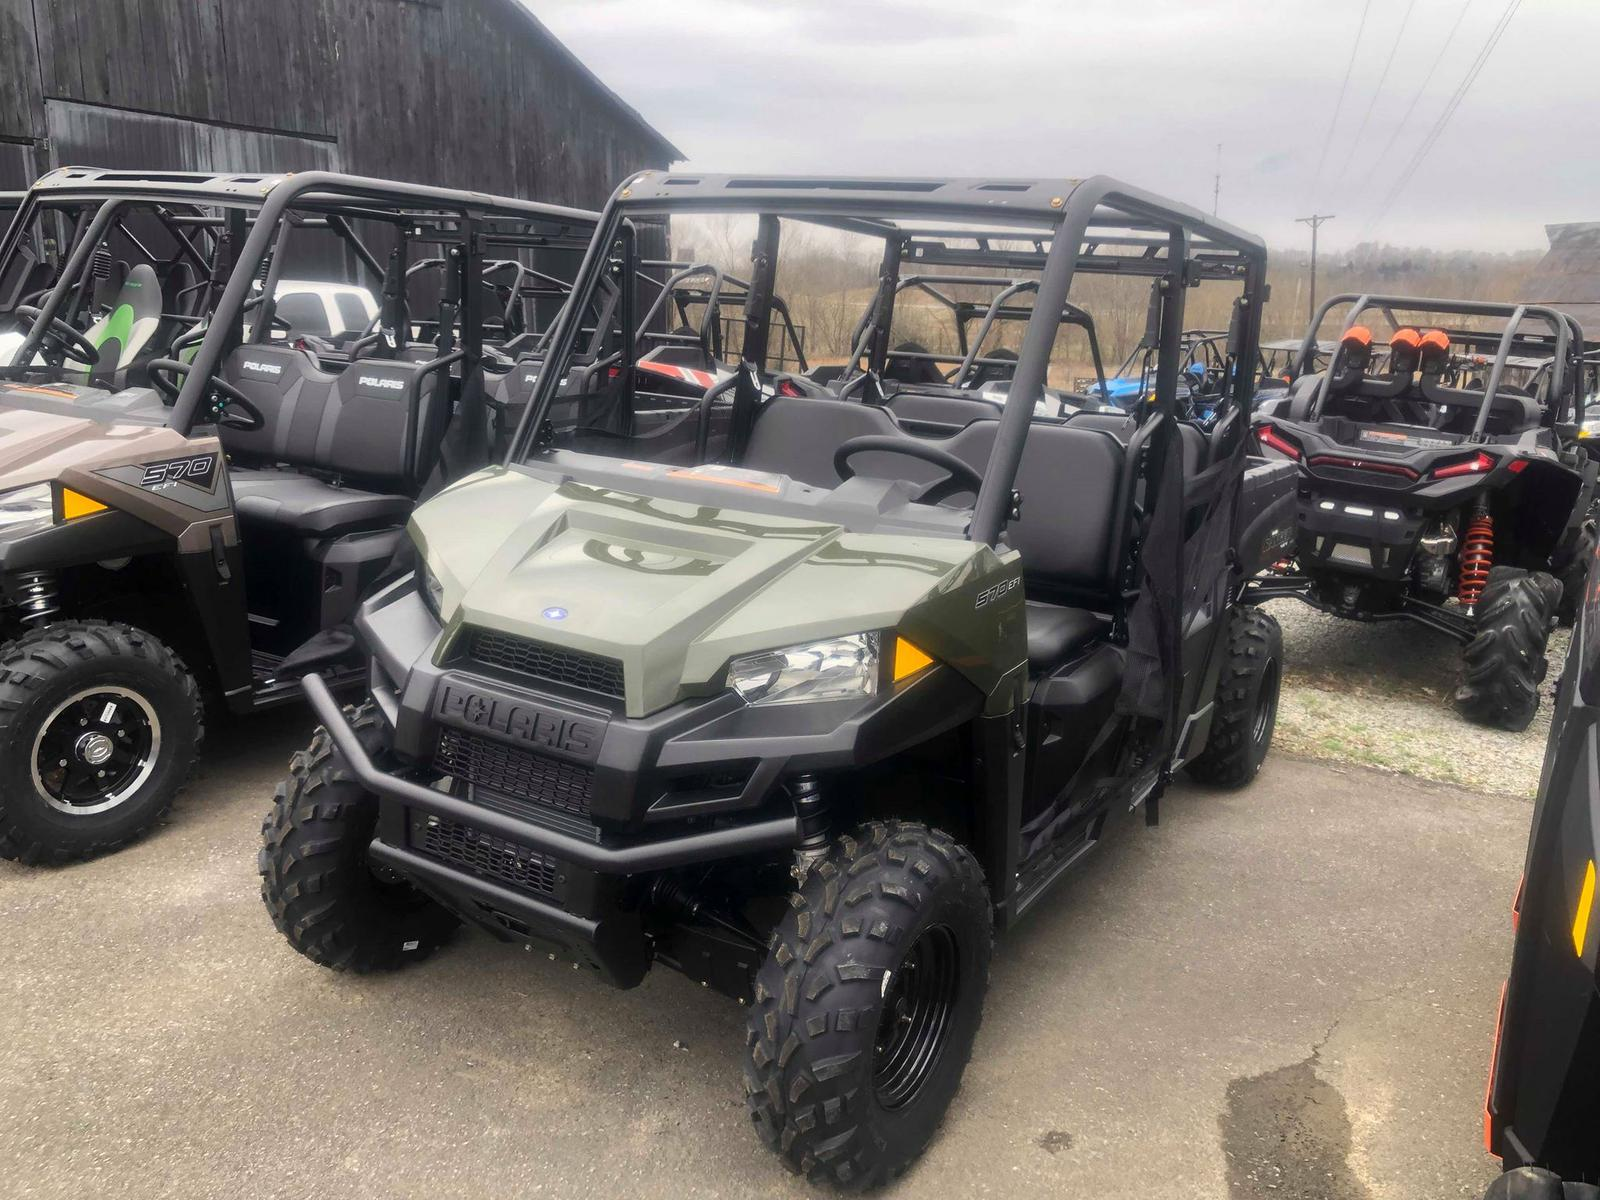 Inventory from Polaris Industries Rex's Cycle Shop Columbia